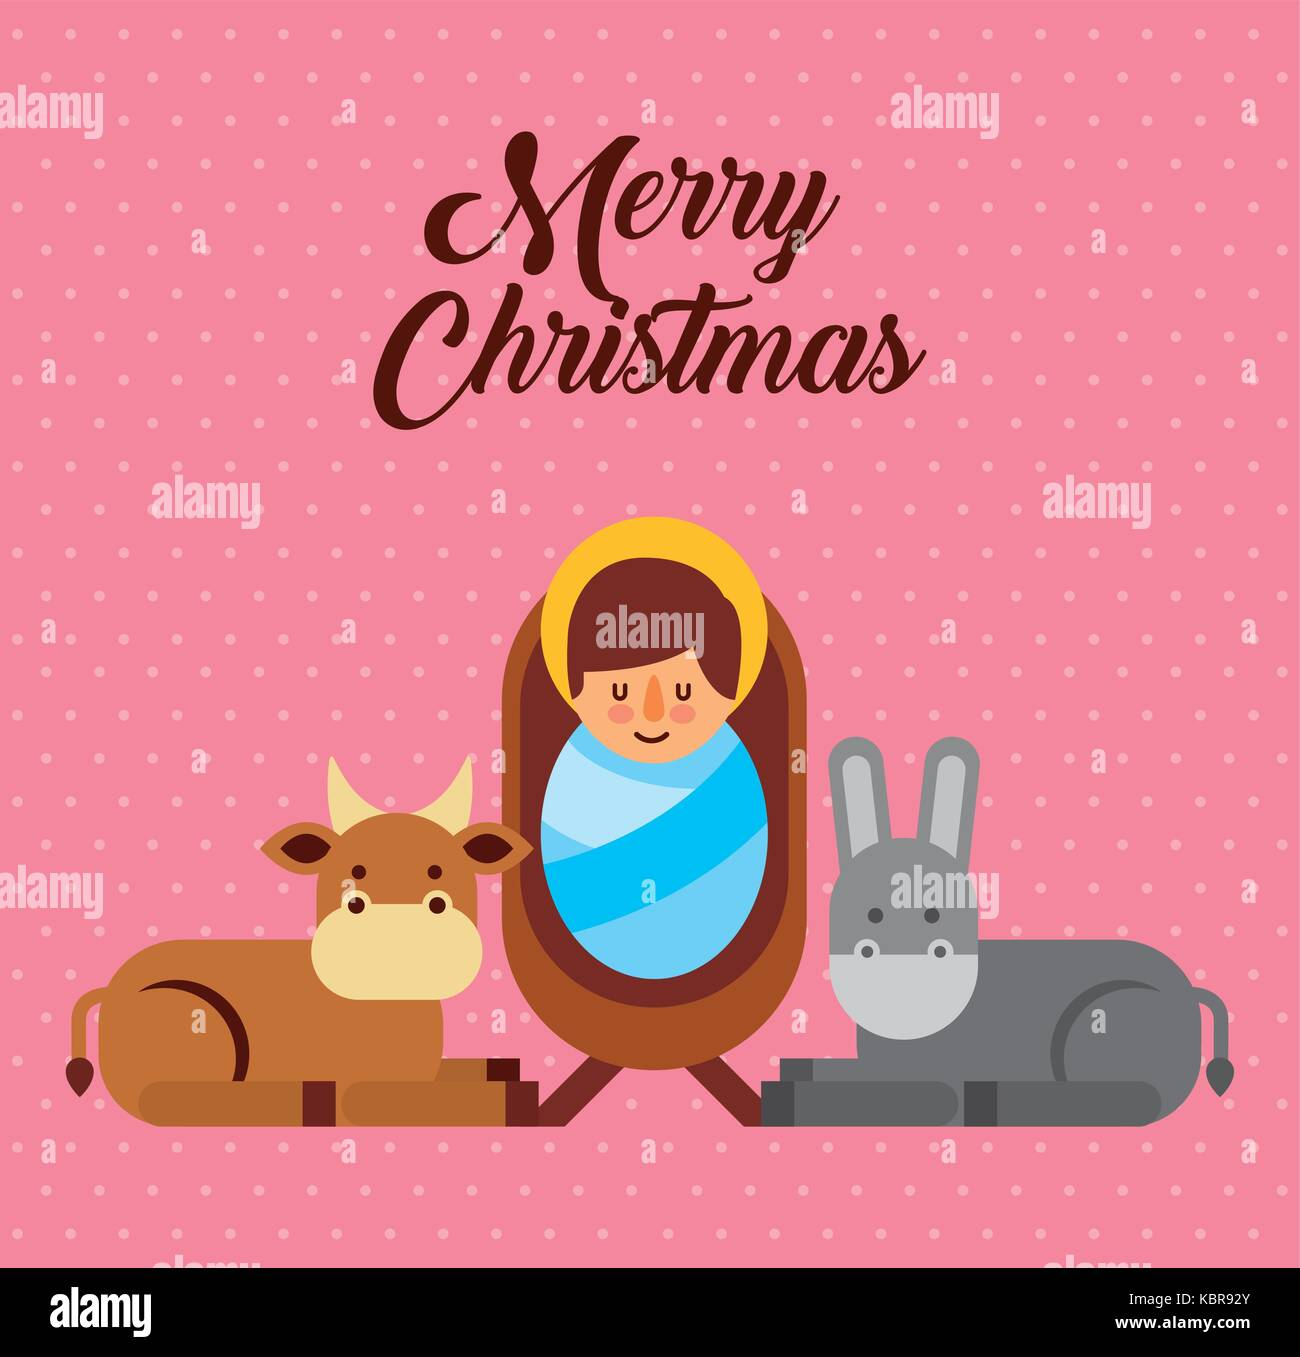 Donkey Jesus Christ Stock Photos & Donkey Jesus Christ Stock Images ...